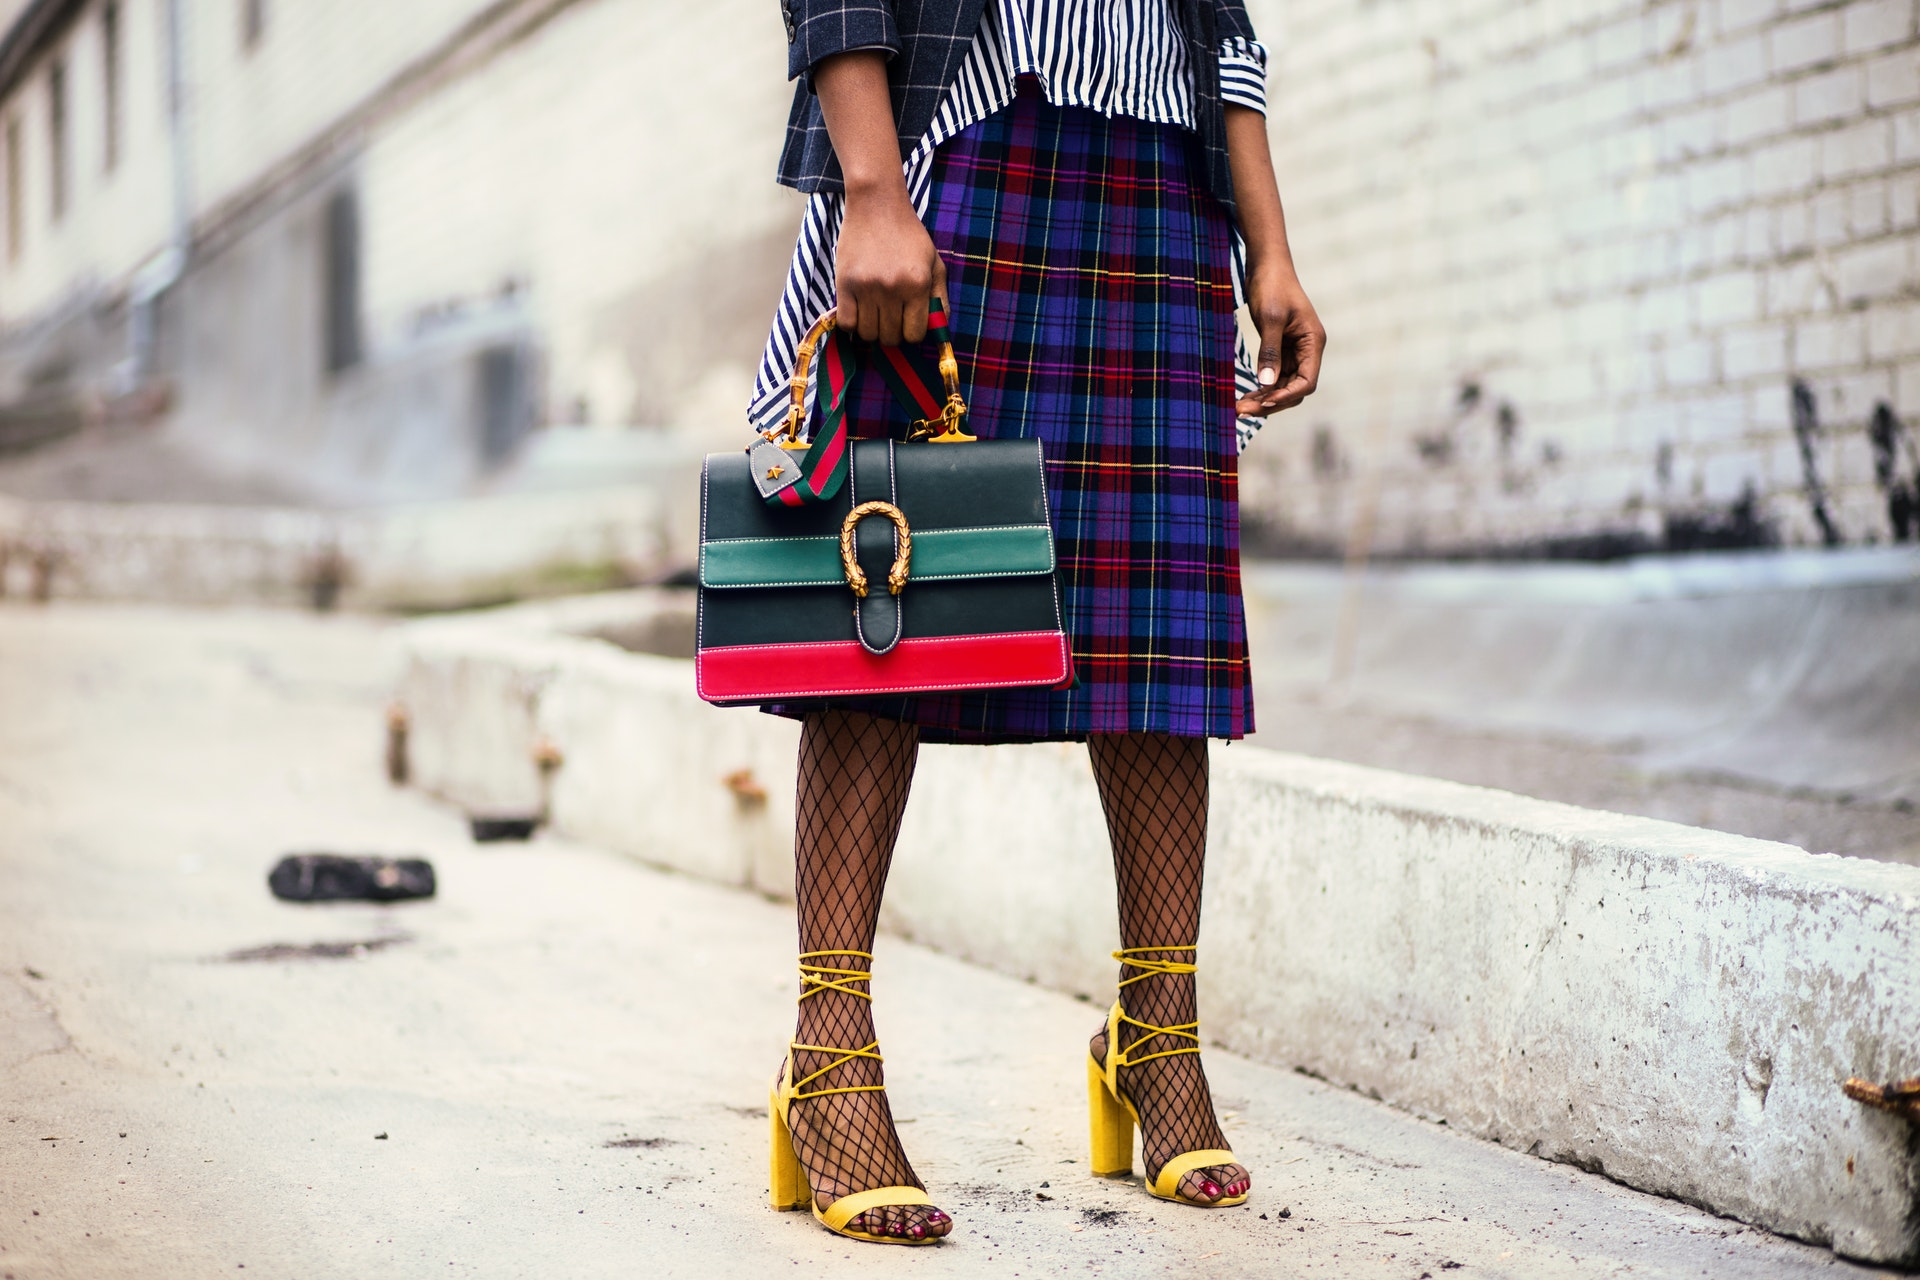 5 Small Businesses to Support During Slow Fashion Season